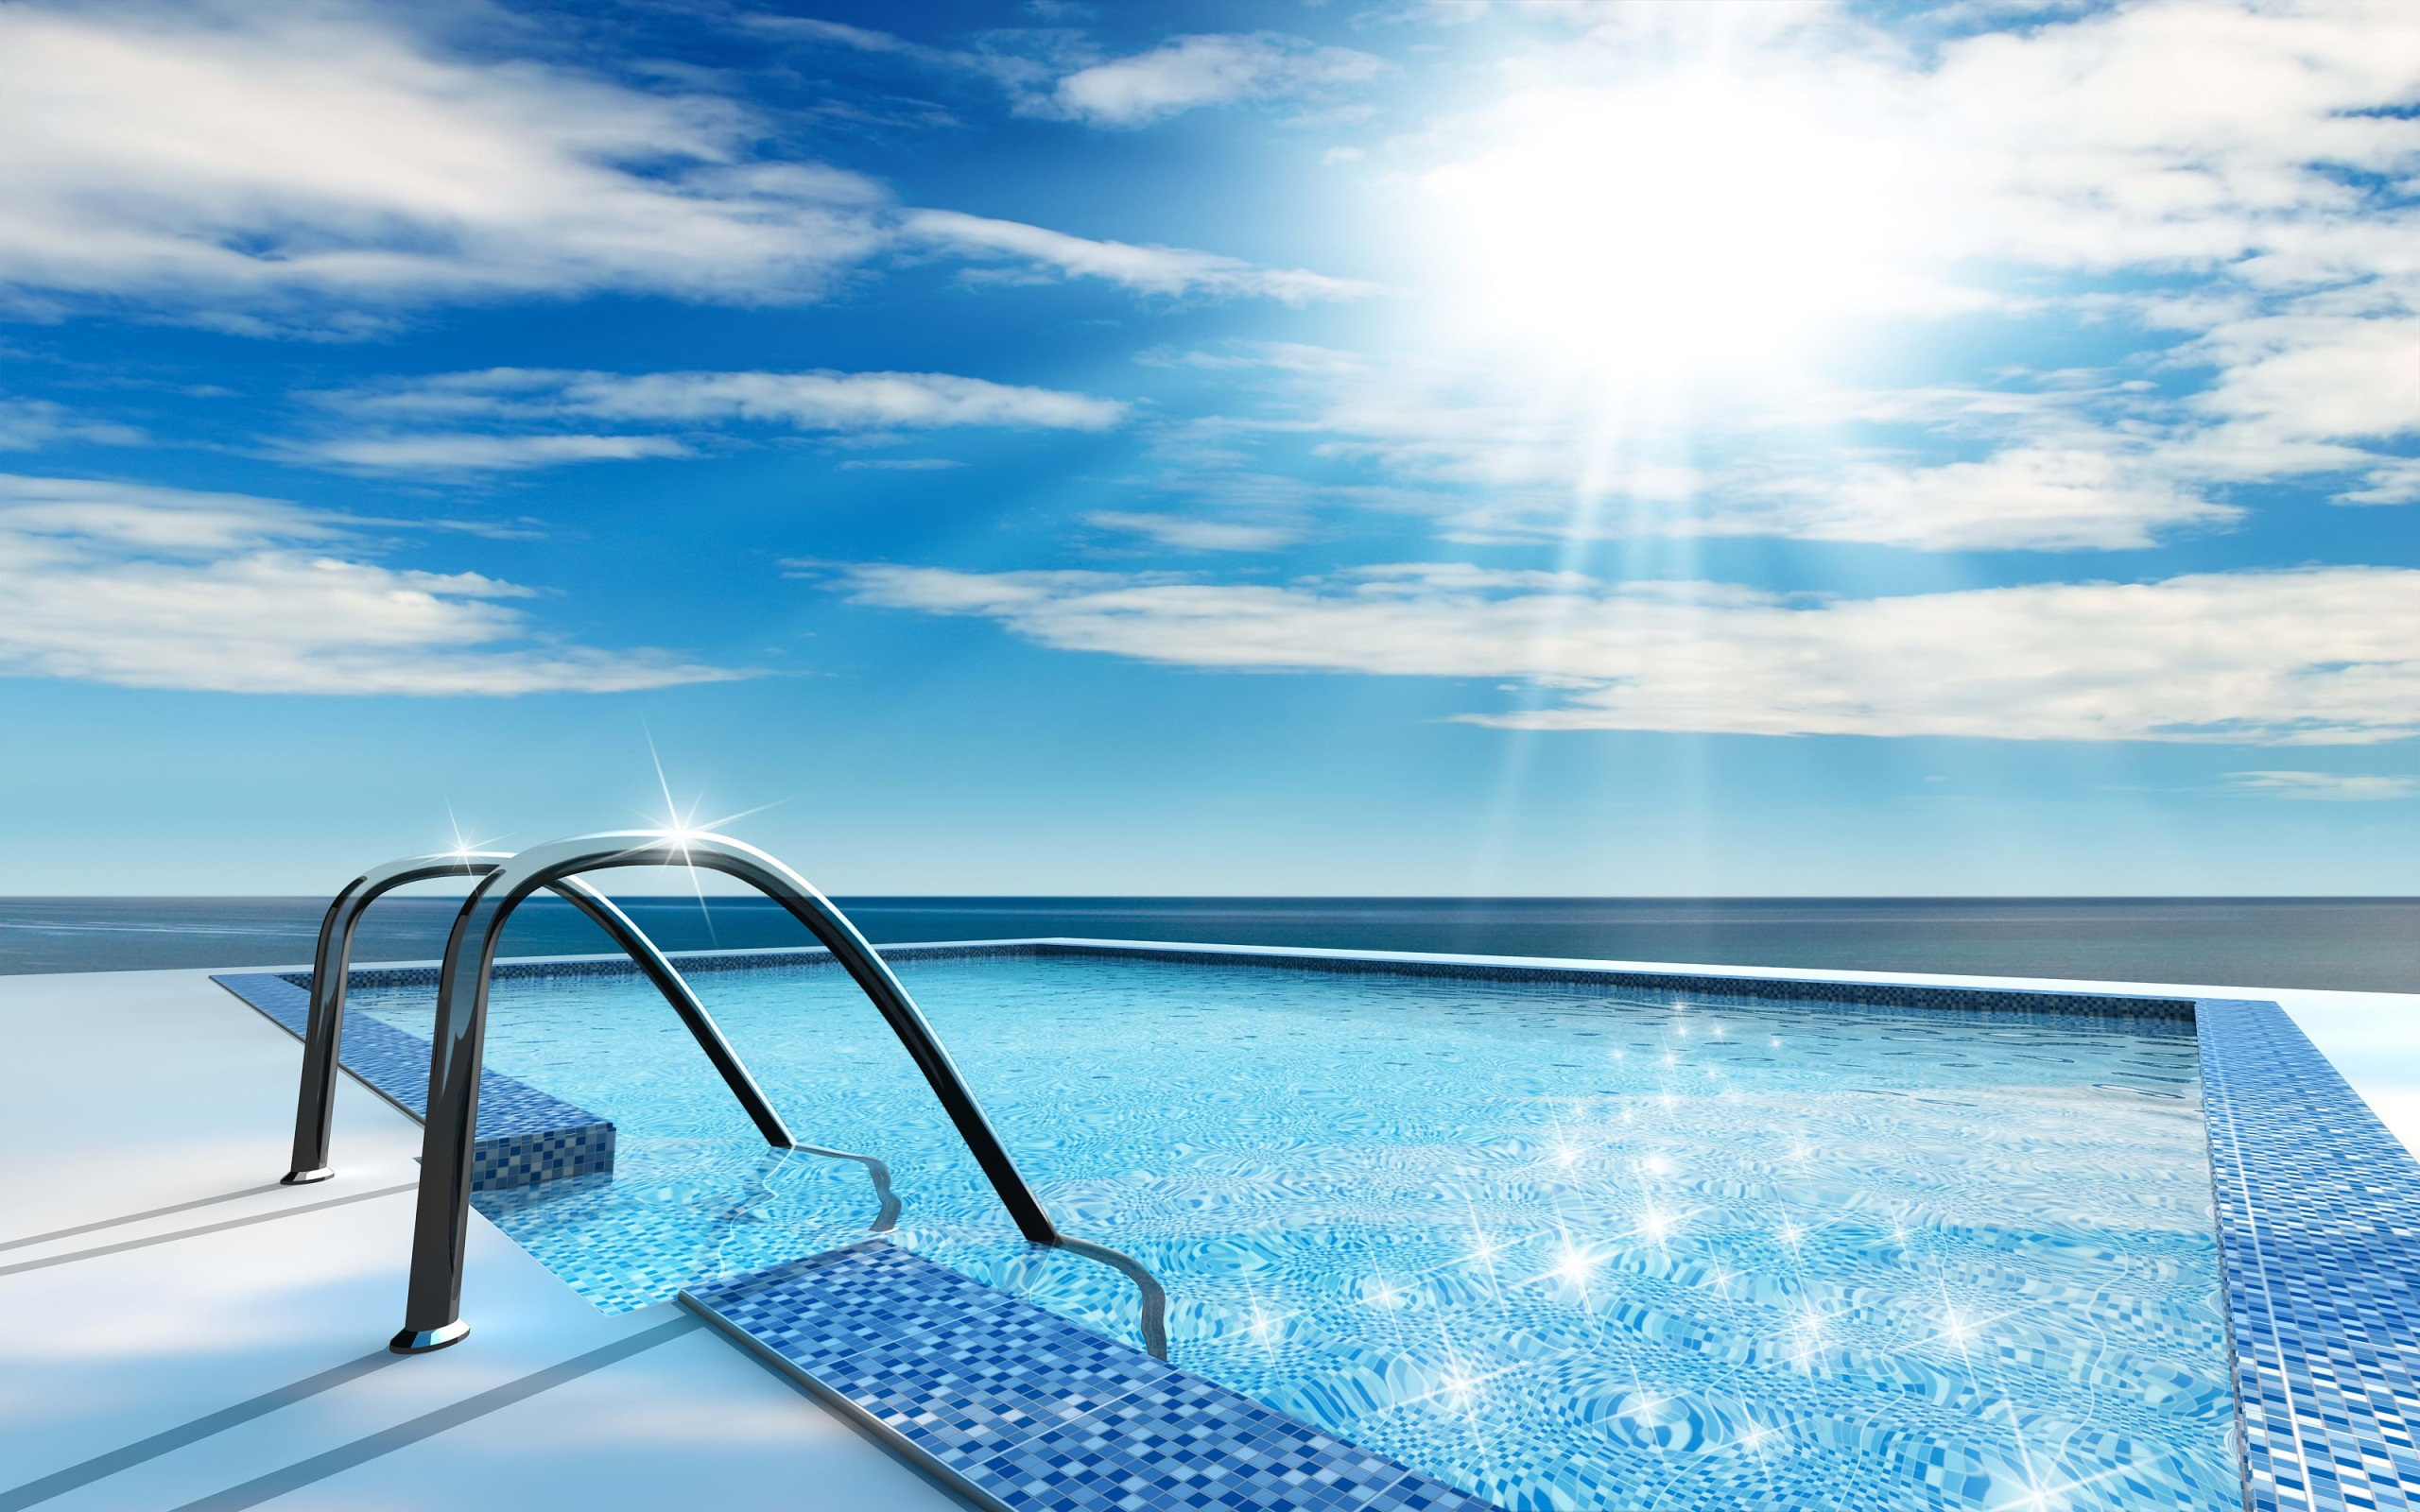 hd swimming pool and lue sky free wallpaper